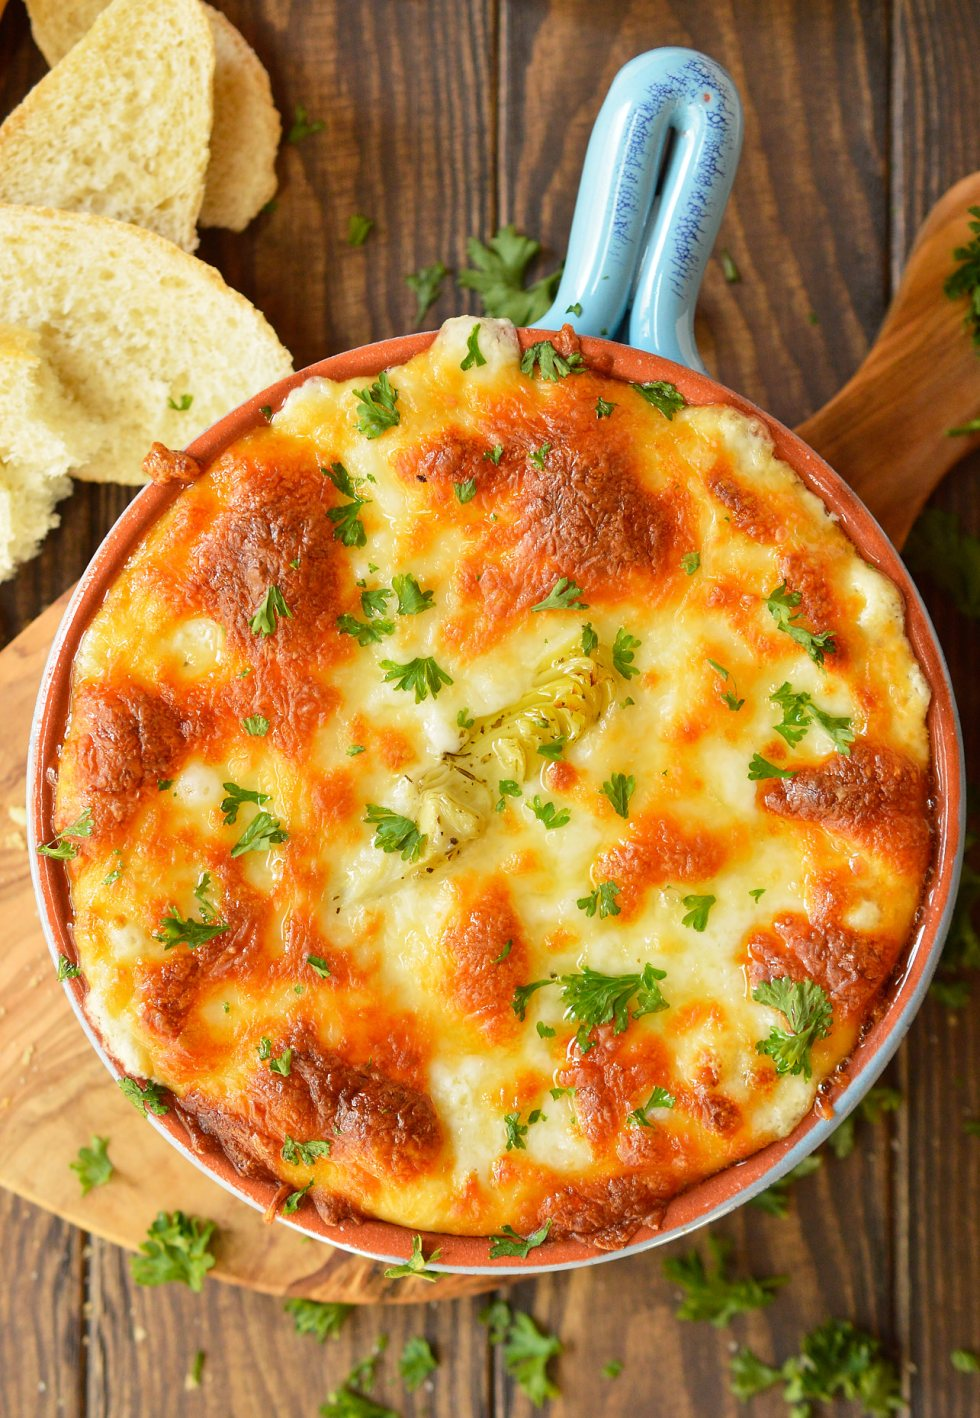 Looking for a cheesy appetizer to feed your hungry crowd? ThisHot Green Chile Artichoke Dip Recipe takes a family favorite to the next level with a punch of green chile flavor! This recipe is quick, easy and perfect for game day or holiday feasts. #appetizer